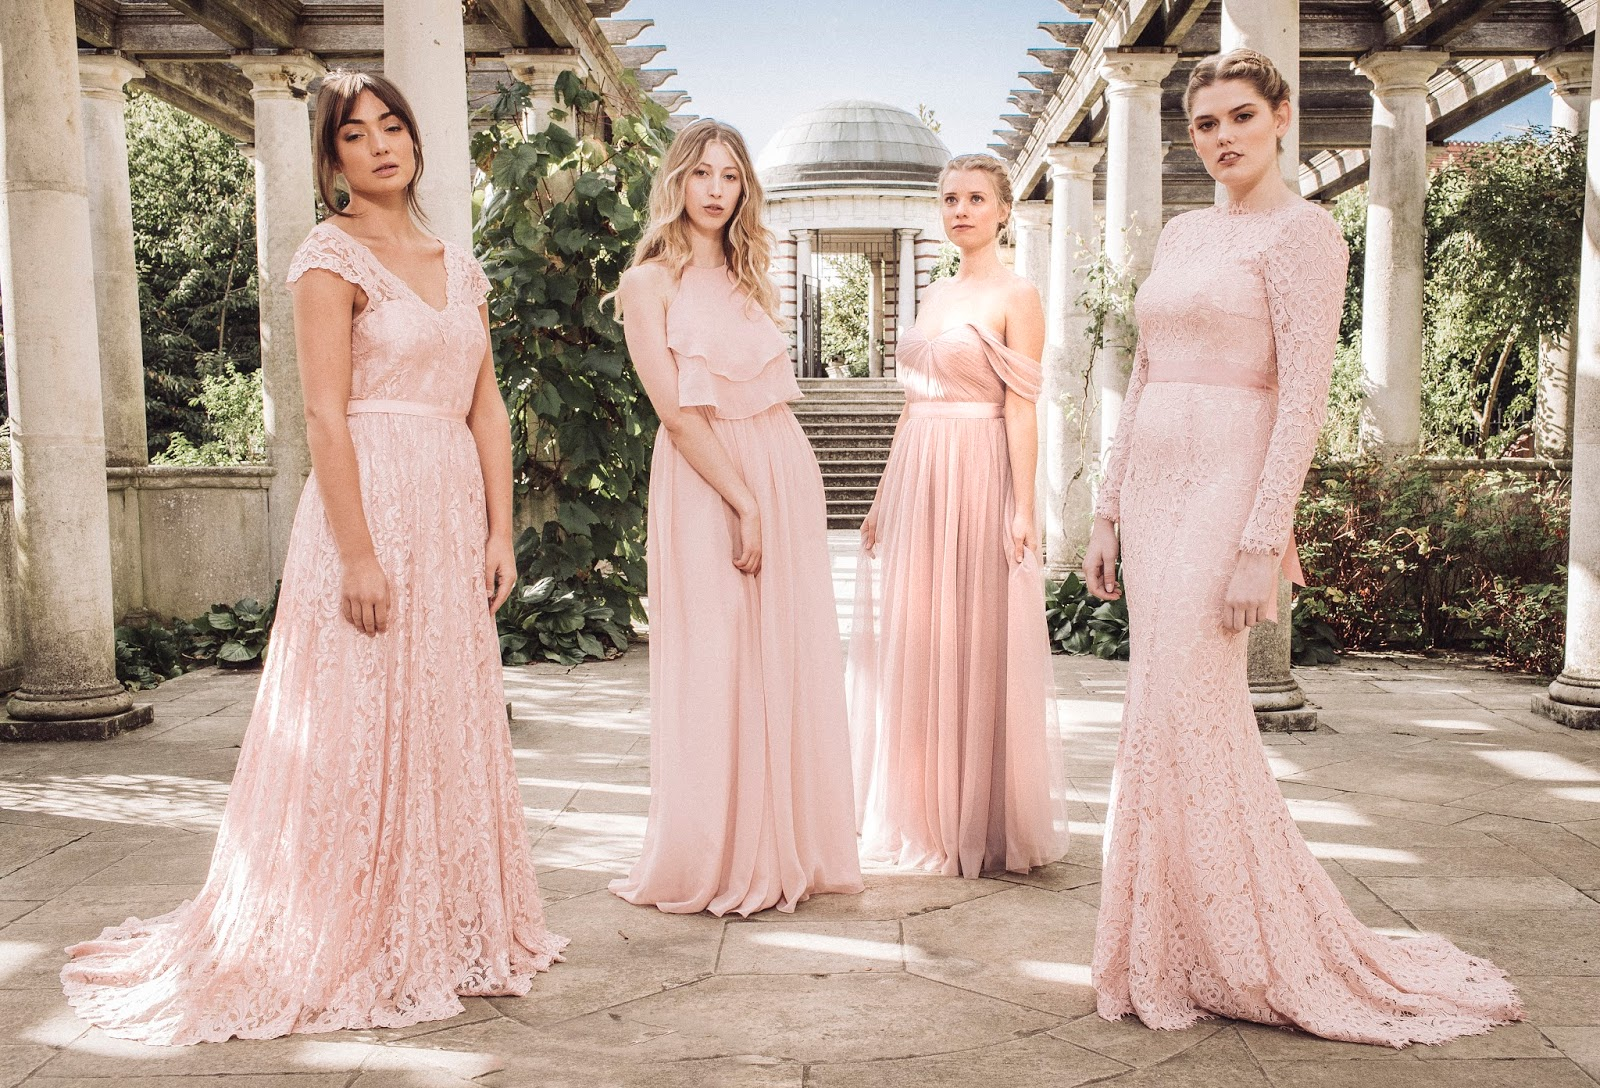 The Path To Finding Your Dream Bridesmaid Dresses Can Be One Fraught With Obstacles So When Th Founders Louie Kitty And Ping All Failed Find